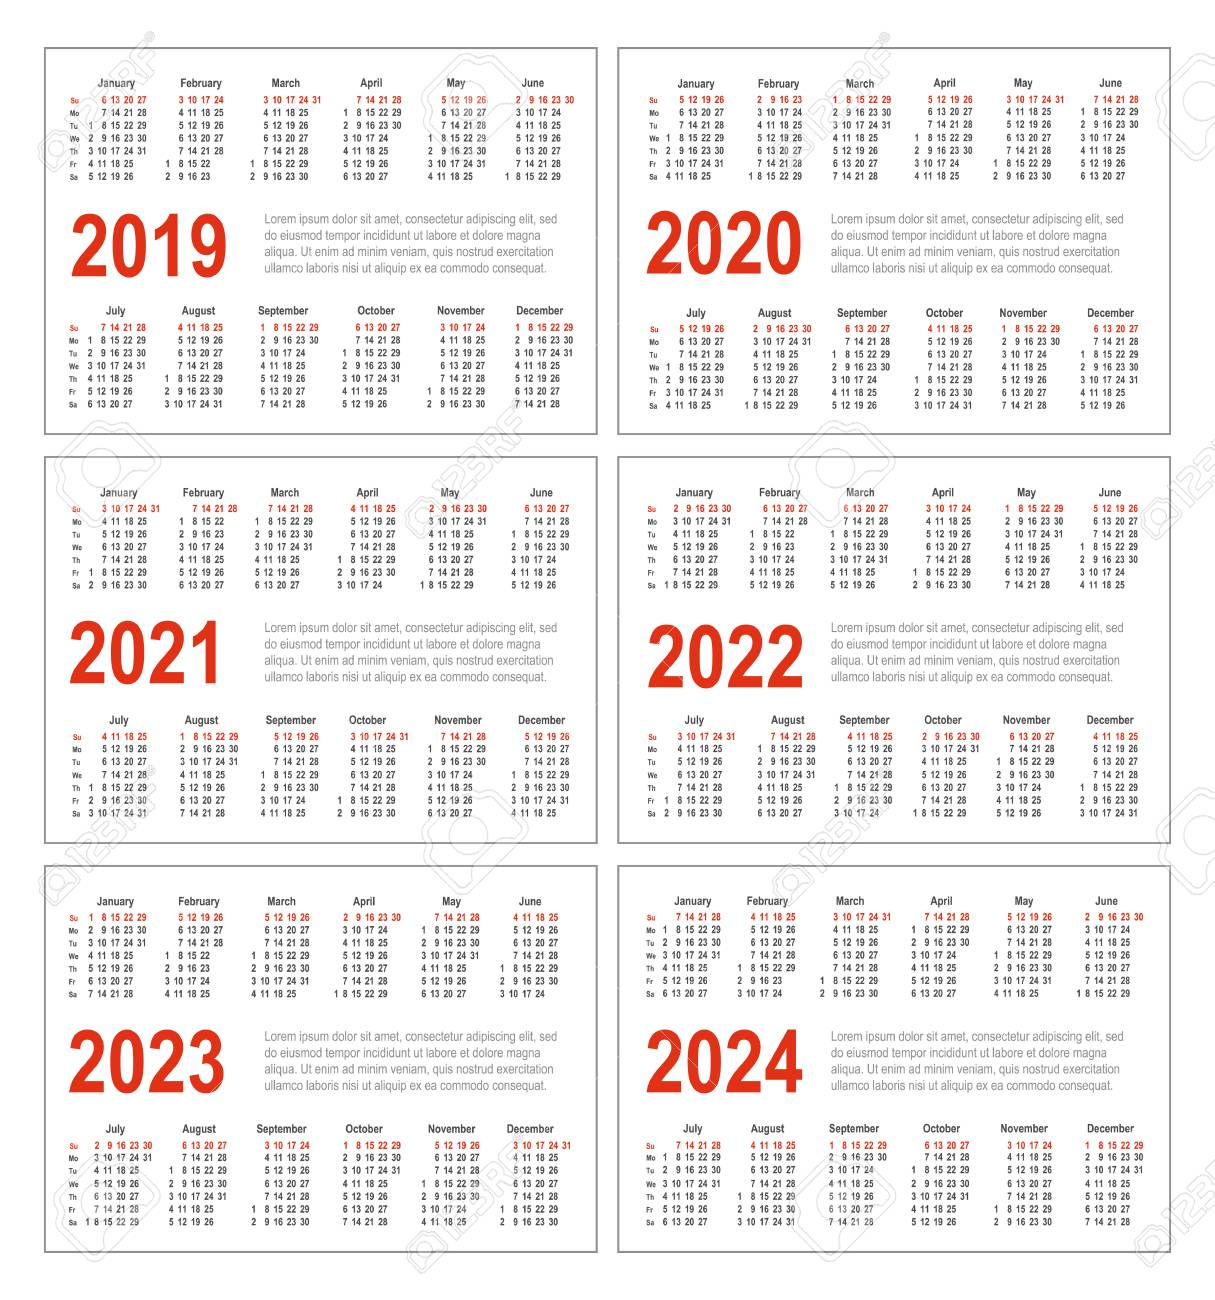 Simple Horizontal Calendar For 2019, 2020, 2021, 2022, 2023 And..